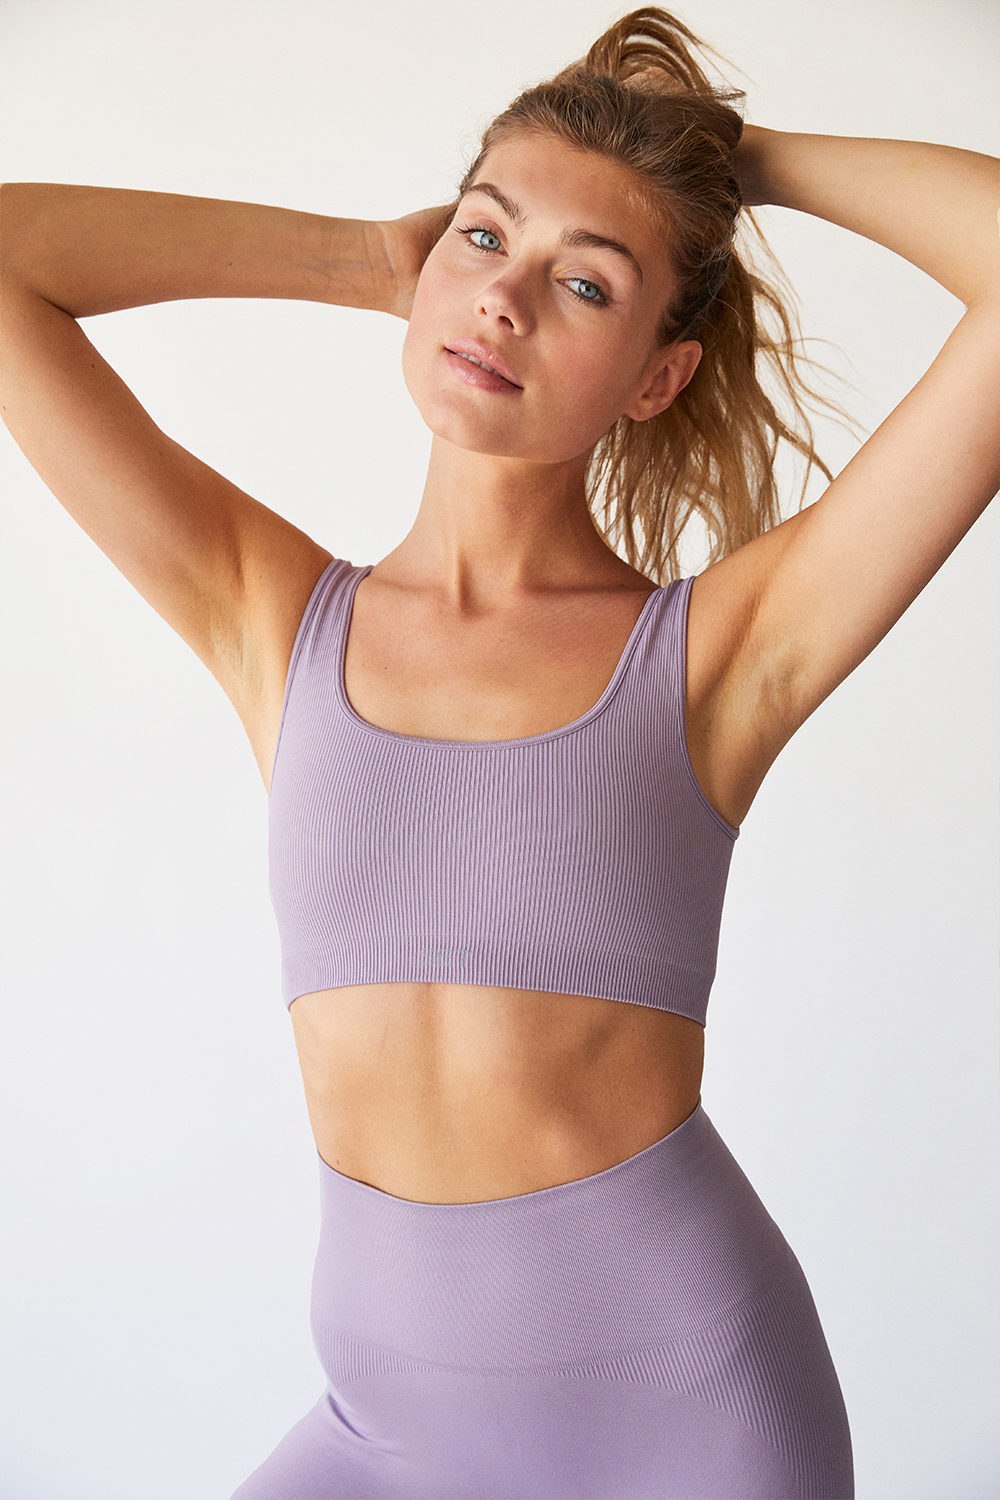 a model in a purple ribbed sports bra with thick straps